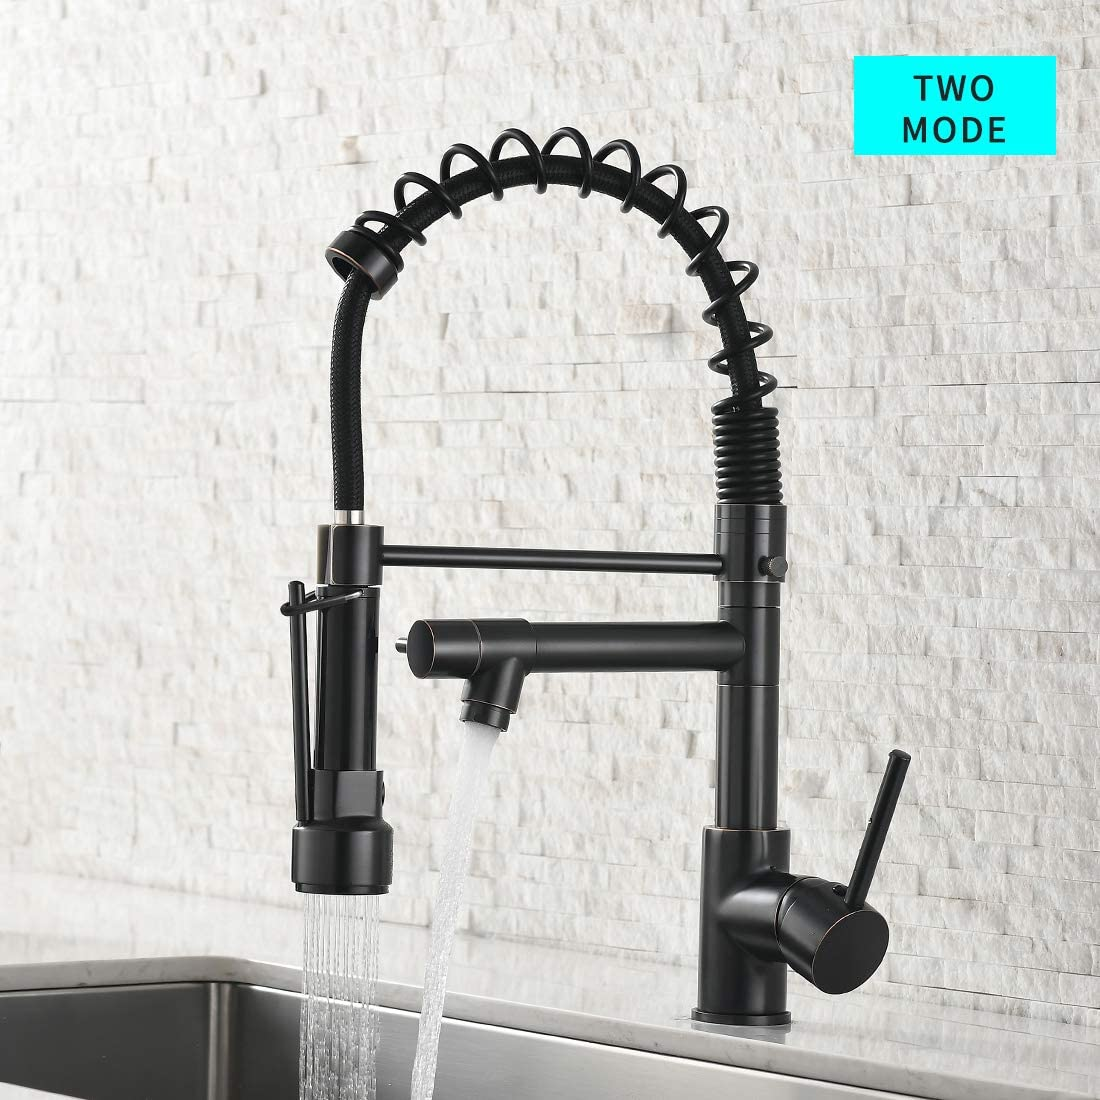 Spring Commercial Kitchen Sink Faucet Modern Single Handle Oil Rubbed Bronze Kitchen Faucets With Pull Down Sprayer Amazon Com